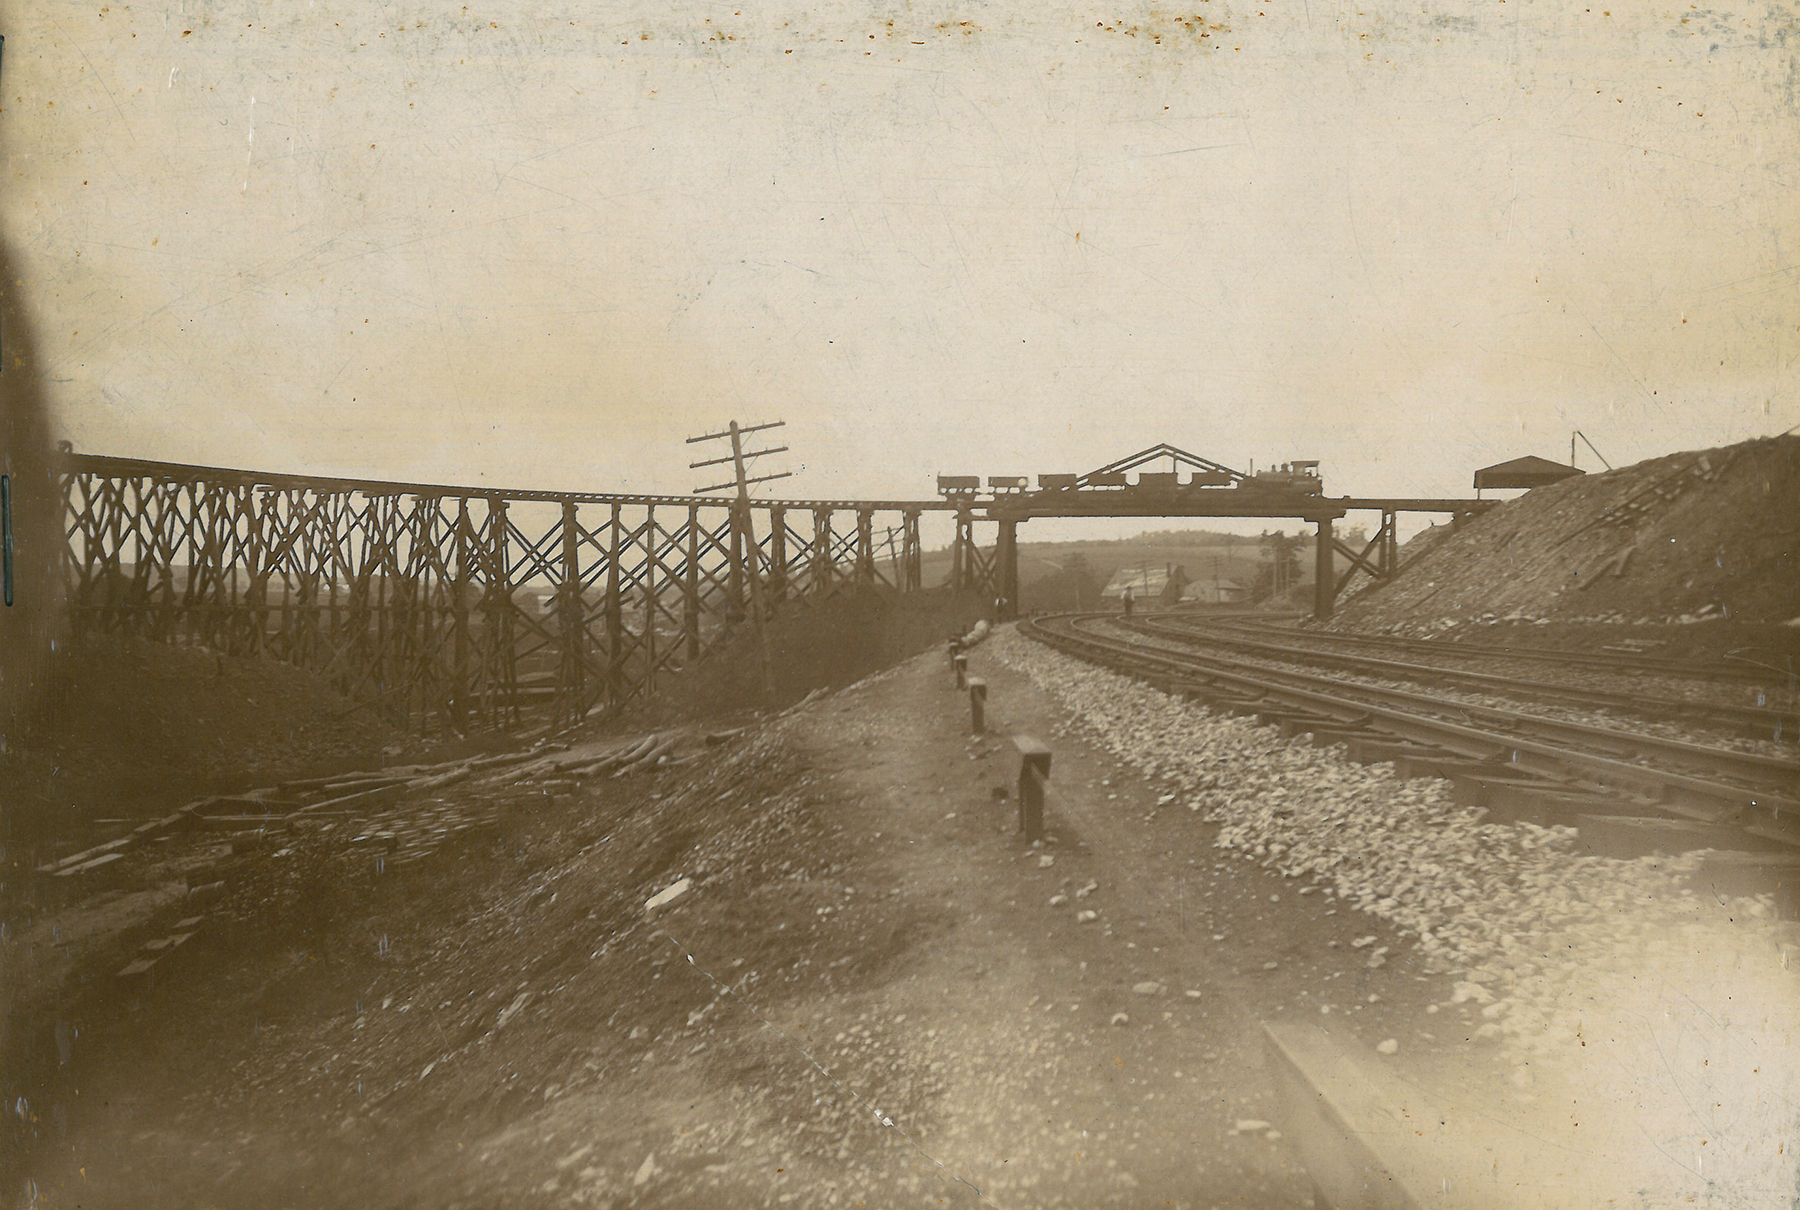 Charles Sims & Co, the contractor, tasked to construct the first seven miles of the A&S Branch erected this narrow-gauge railroad between an area near Zion Hill and the new Low Grade. The temporary line hauled material stored on local land holdings to the new elevated right of way, which required massive amounts of fill to maintain a gentle grade across the undulating landscape of Southern Lancaster County. Moores Memorial Library, Christiana, PA.